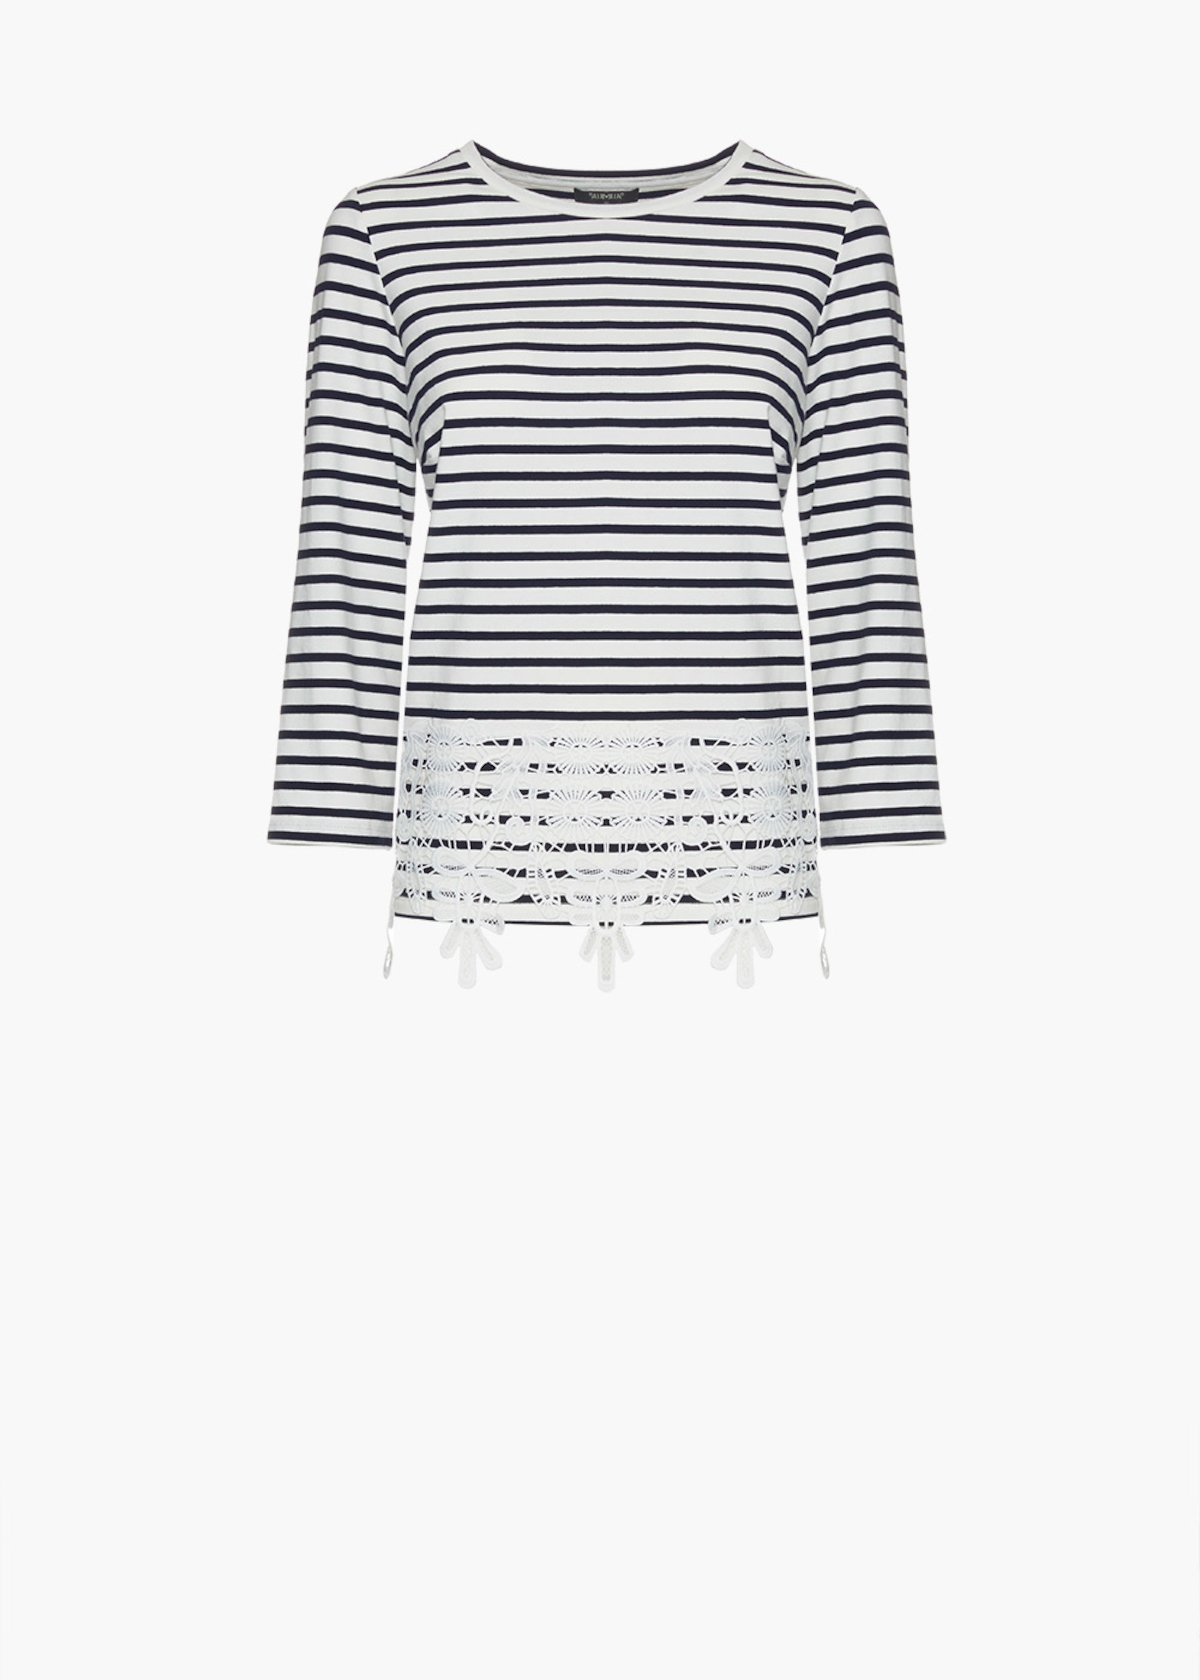 T-shirt Shelby stripes fantasy con dettaglio pizzo sul fondo - Blue / White Stripes - Donna